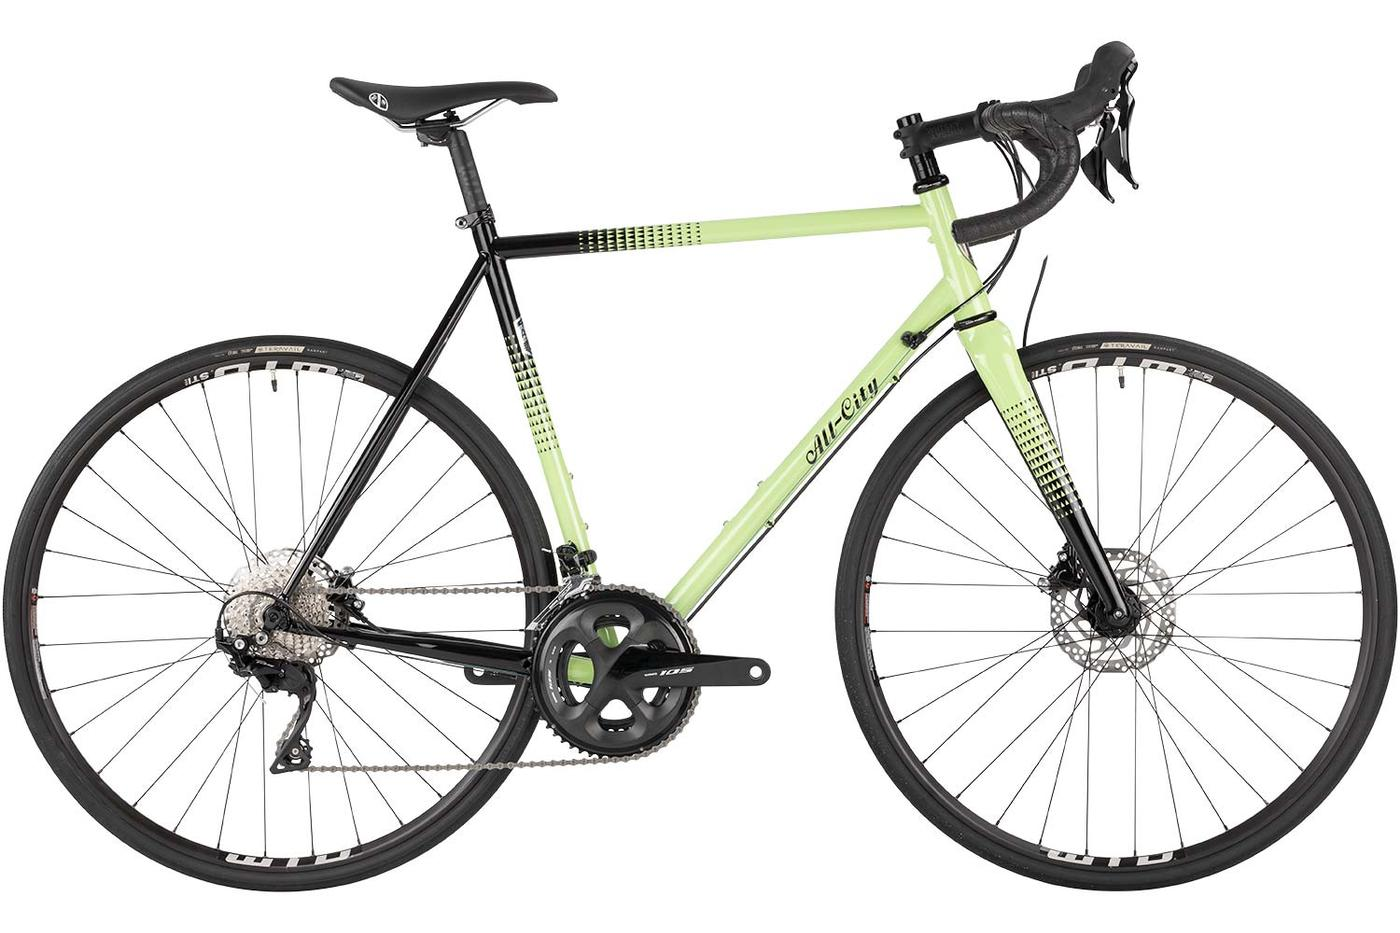 The All-City Cycles Zig Zag 105 and Ultegra Models Get New Colors